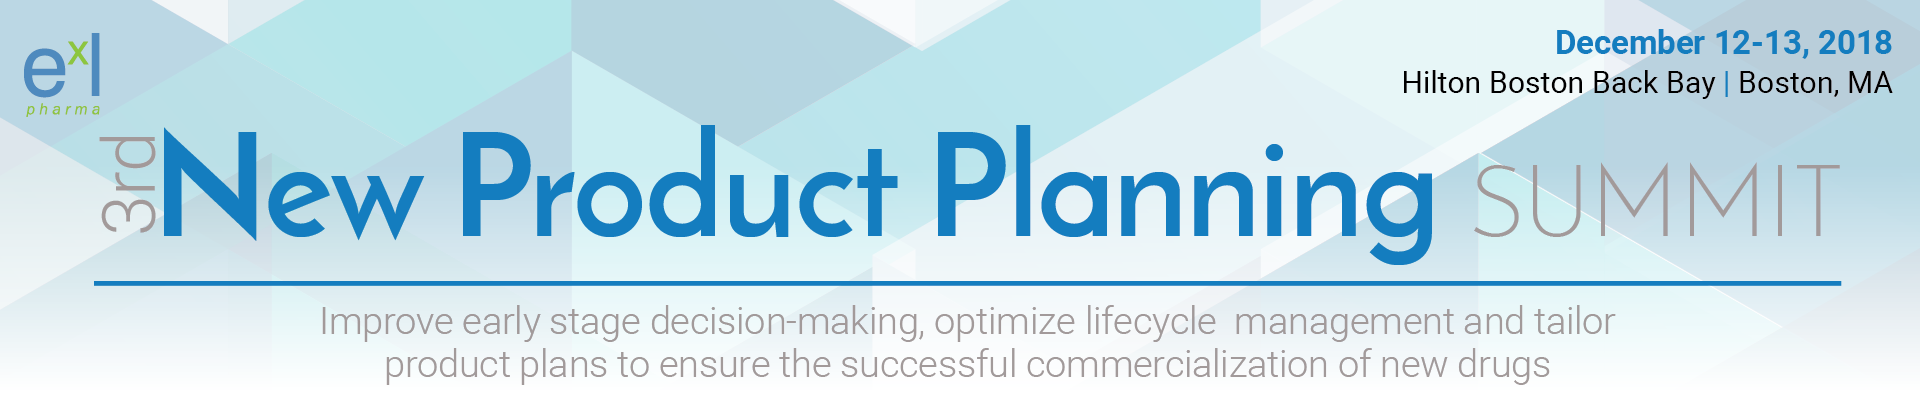 3rd New Product Planning Summit